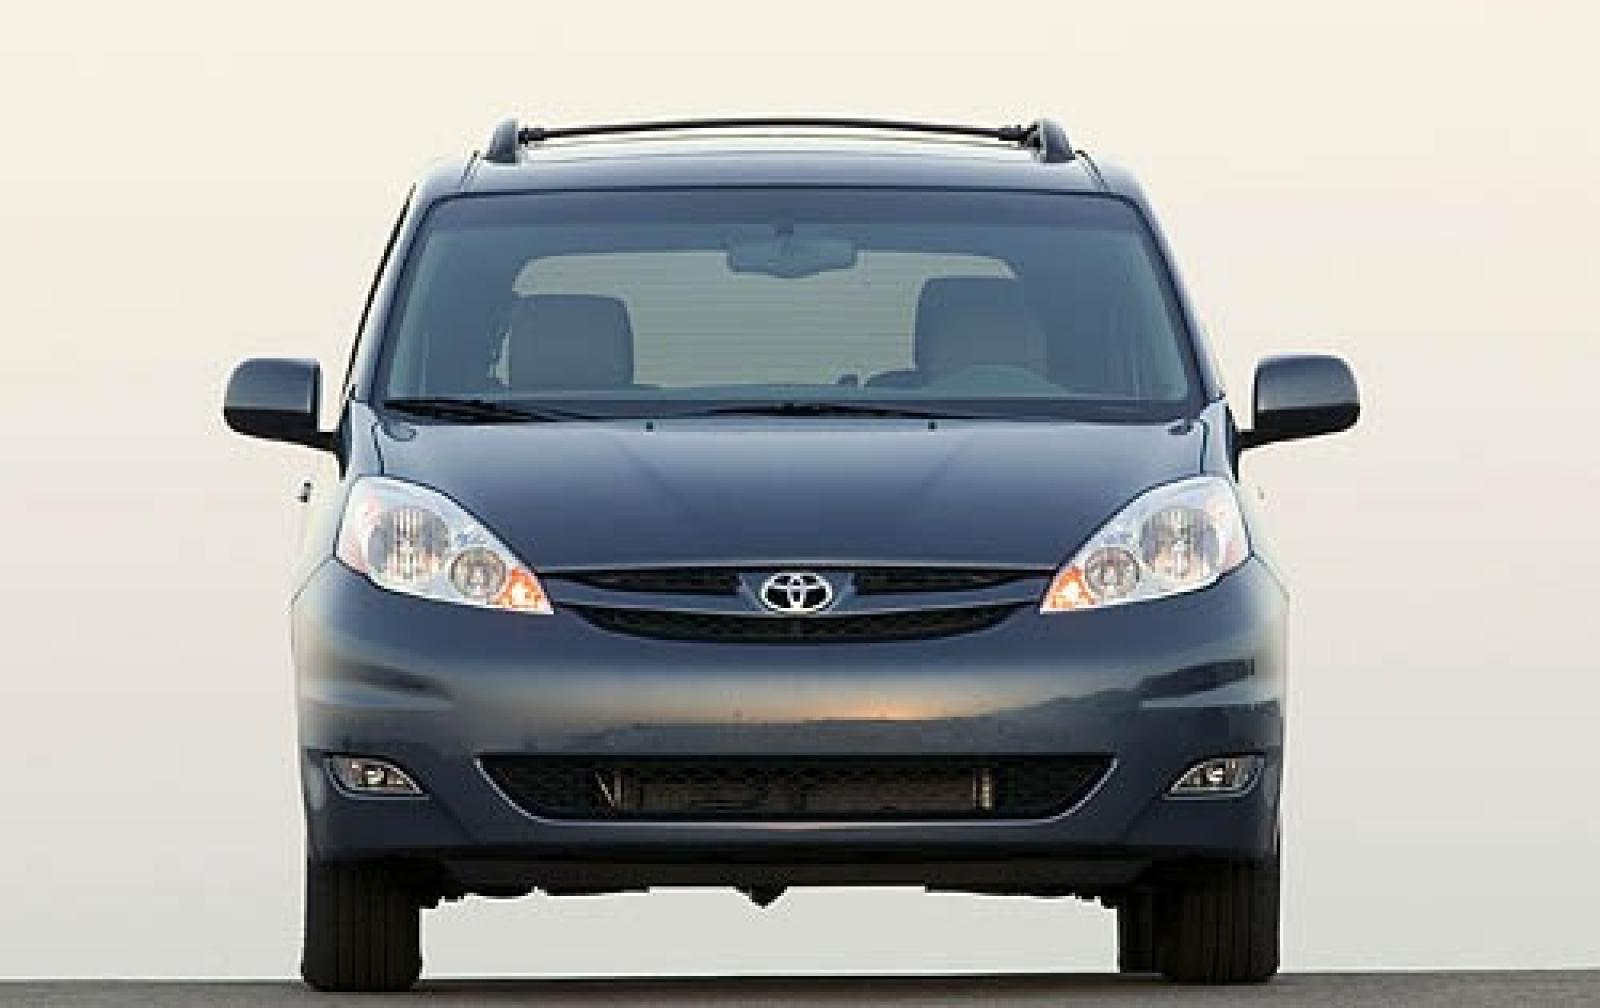 2006 toyota sienna information and photos zombiedrive. Black Bedroom Furniture Sets. Home Design Ideas